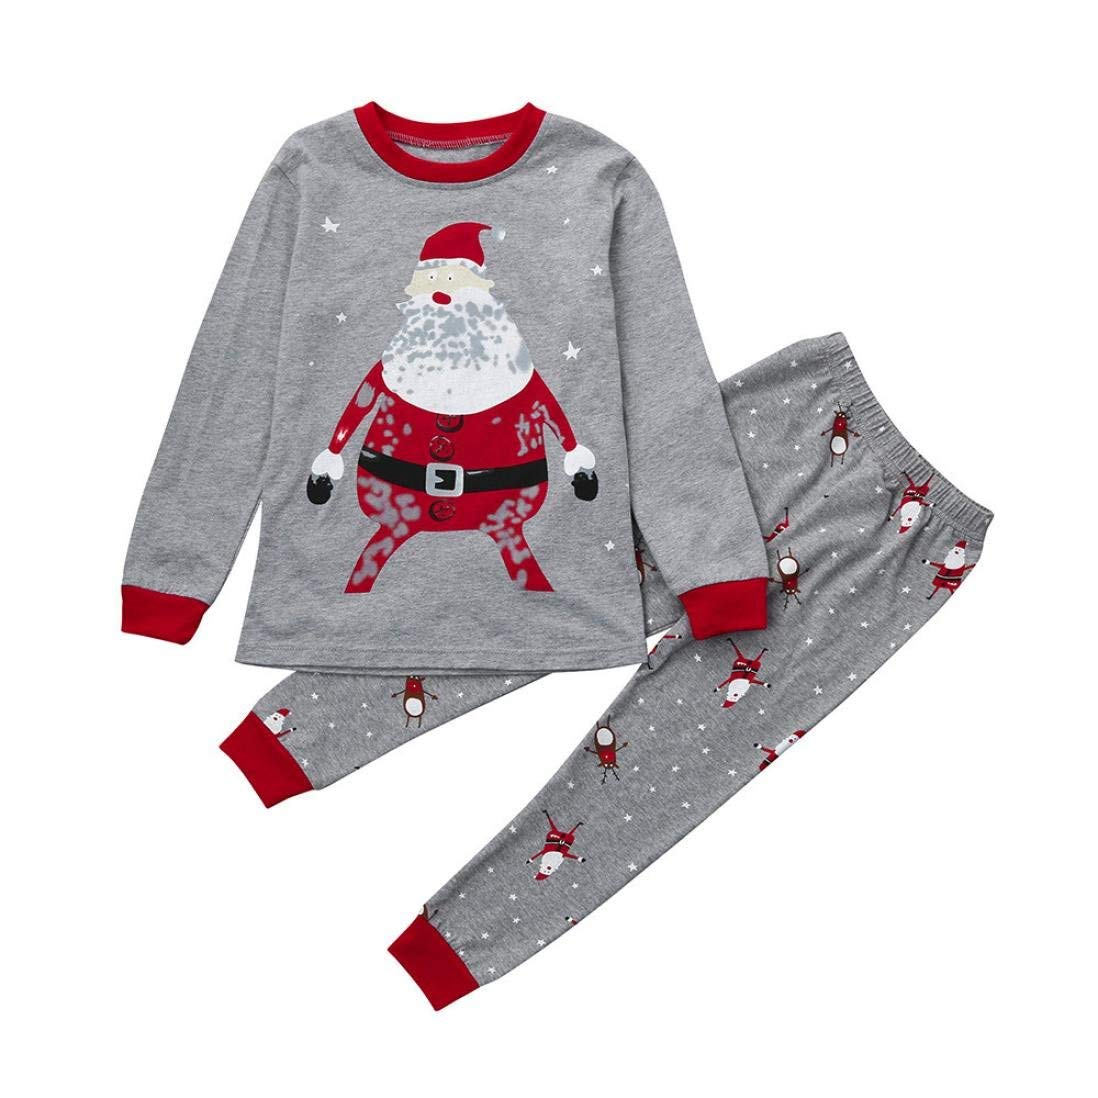 03af996a82dfa Get Quotations · Kimanli Christmas Newborn Infant Baby Boys Girls  Tops+Pants Pajamas Outfits Set